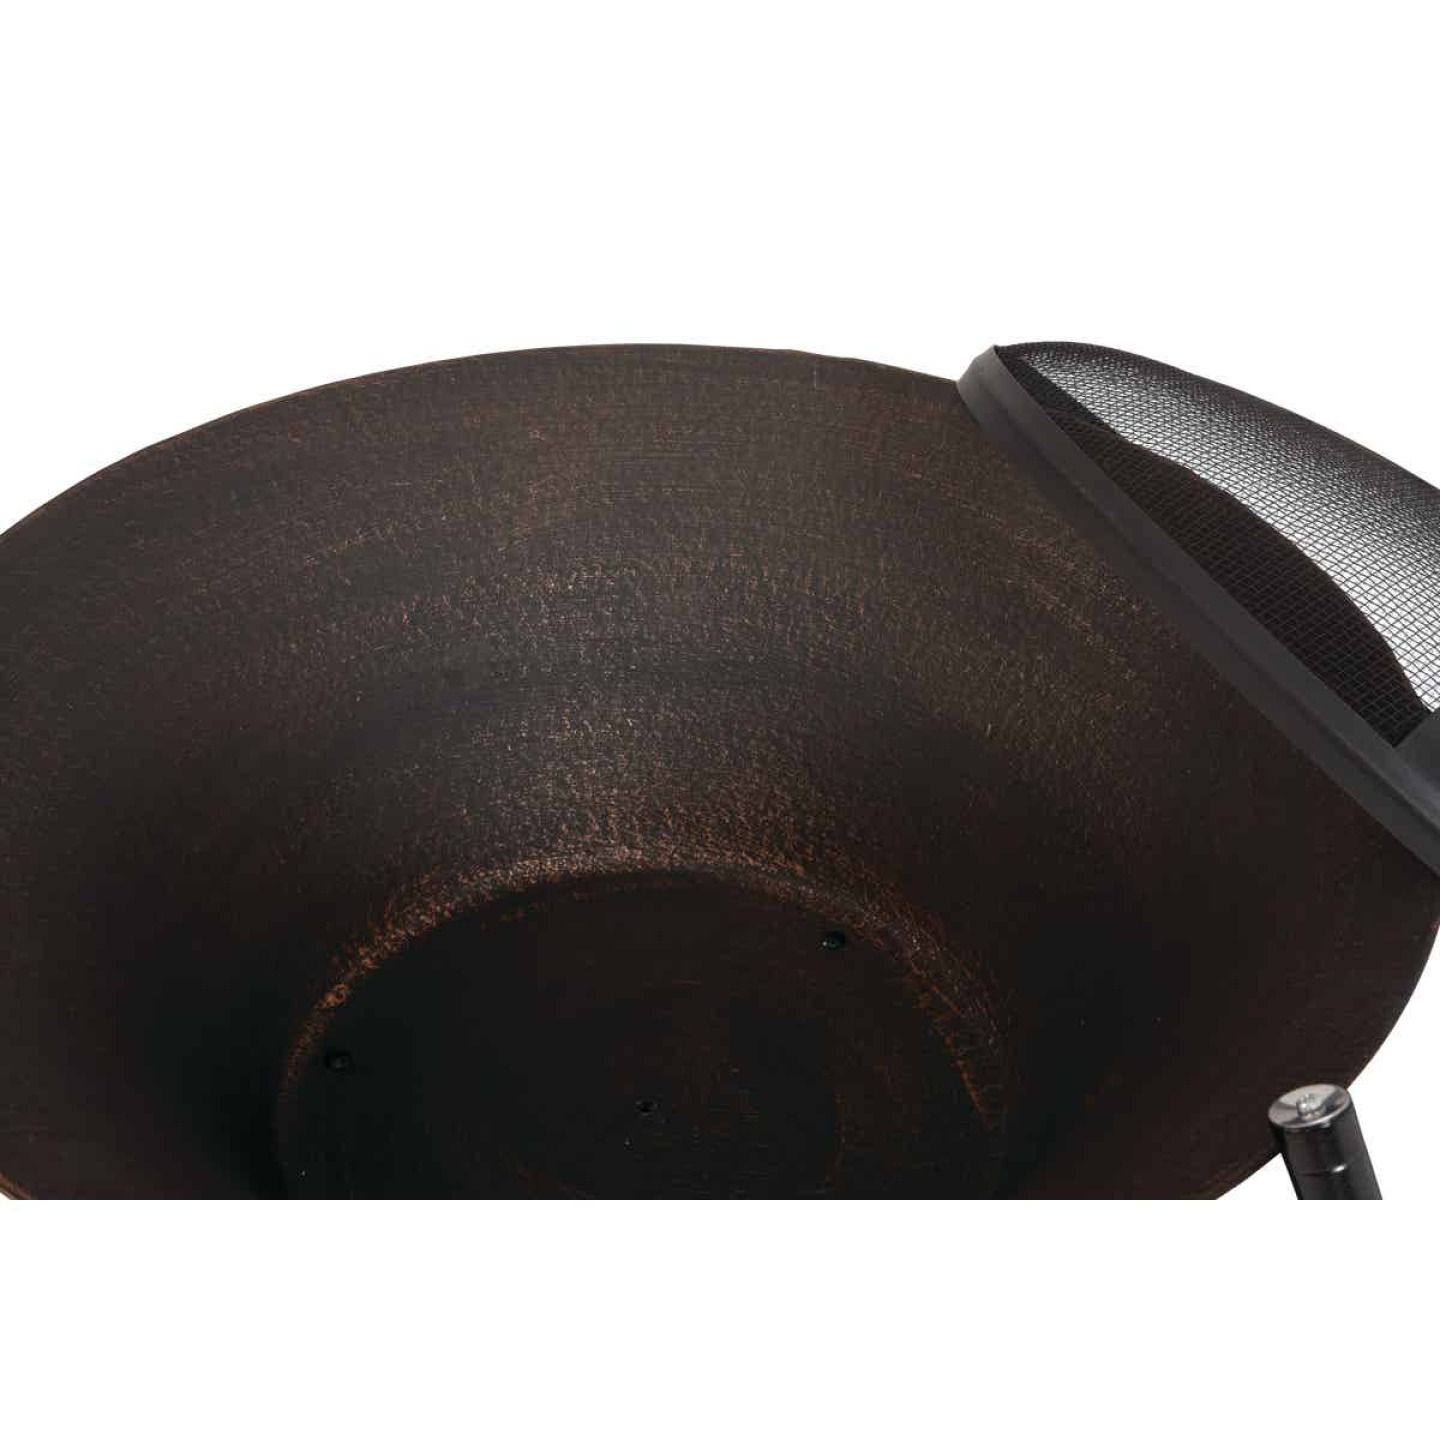 Outdoor Expressions 26 In. Antique Bronze Round Cast Iron Fire Pit Image 4